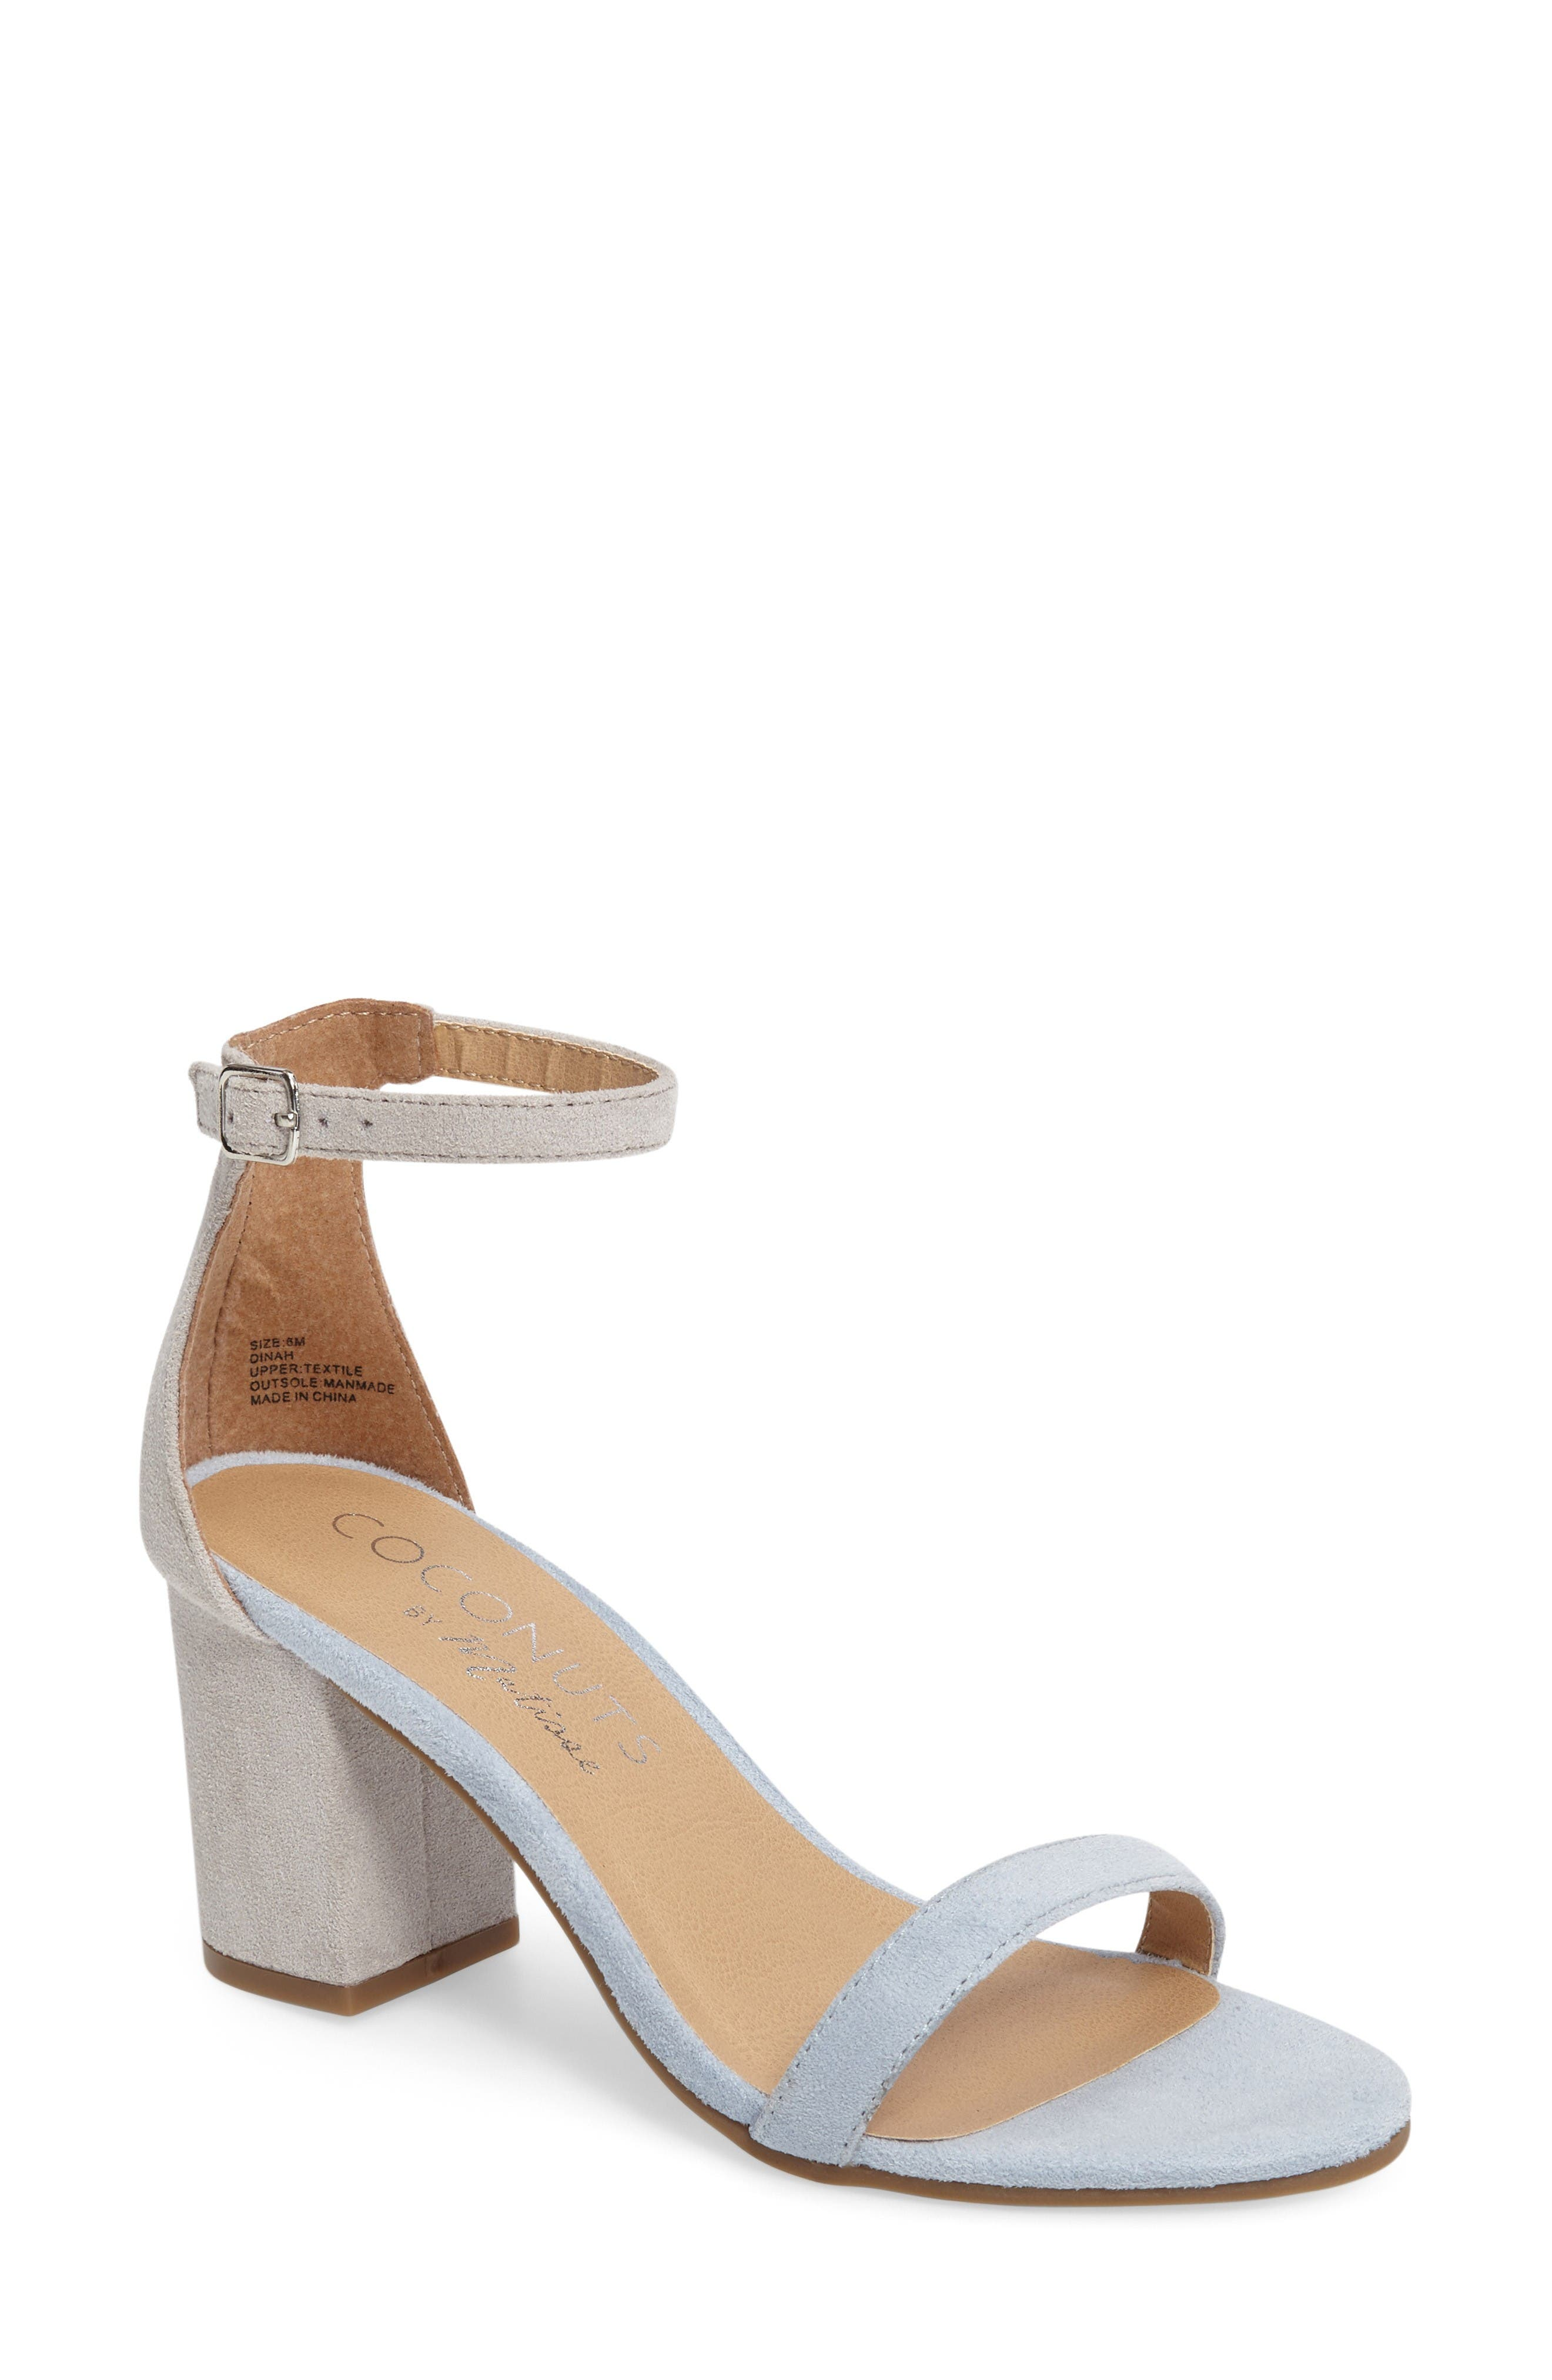 Coconuts by Matisse Dinah Ankle Strap Sandal